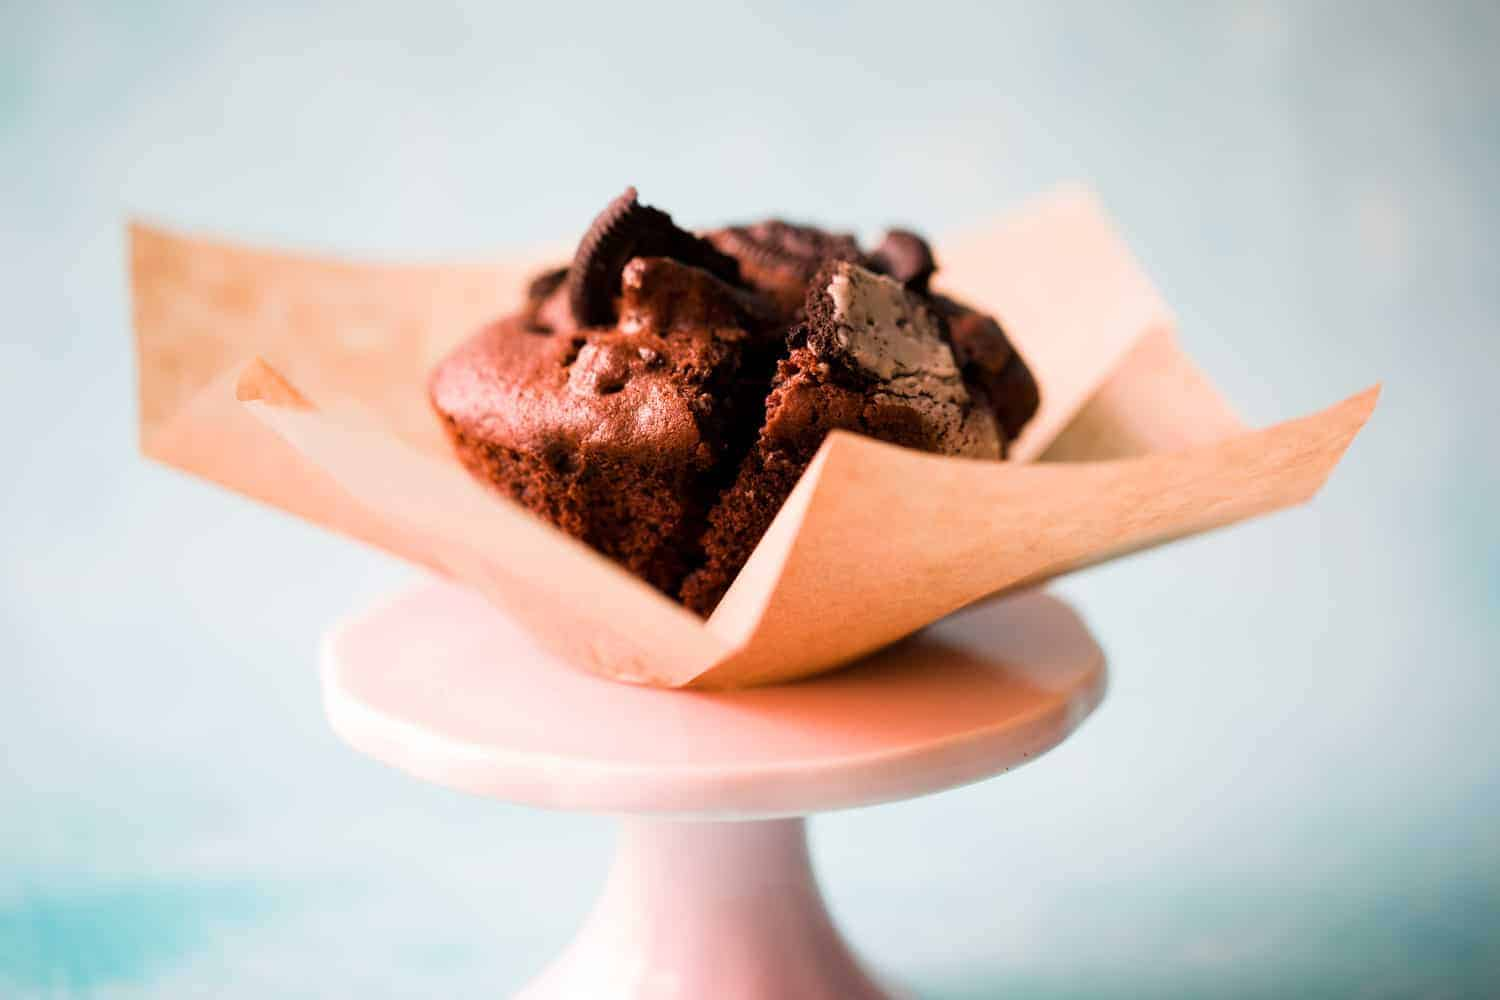 Side view of an Oreo muffin in a brown muffin case on top of a small pink cake stand